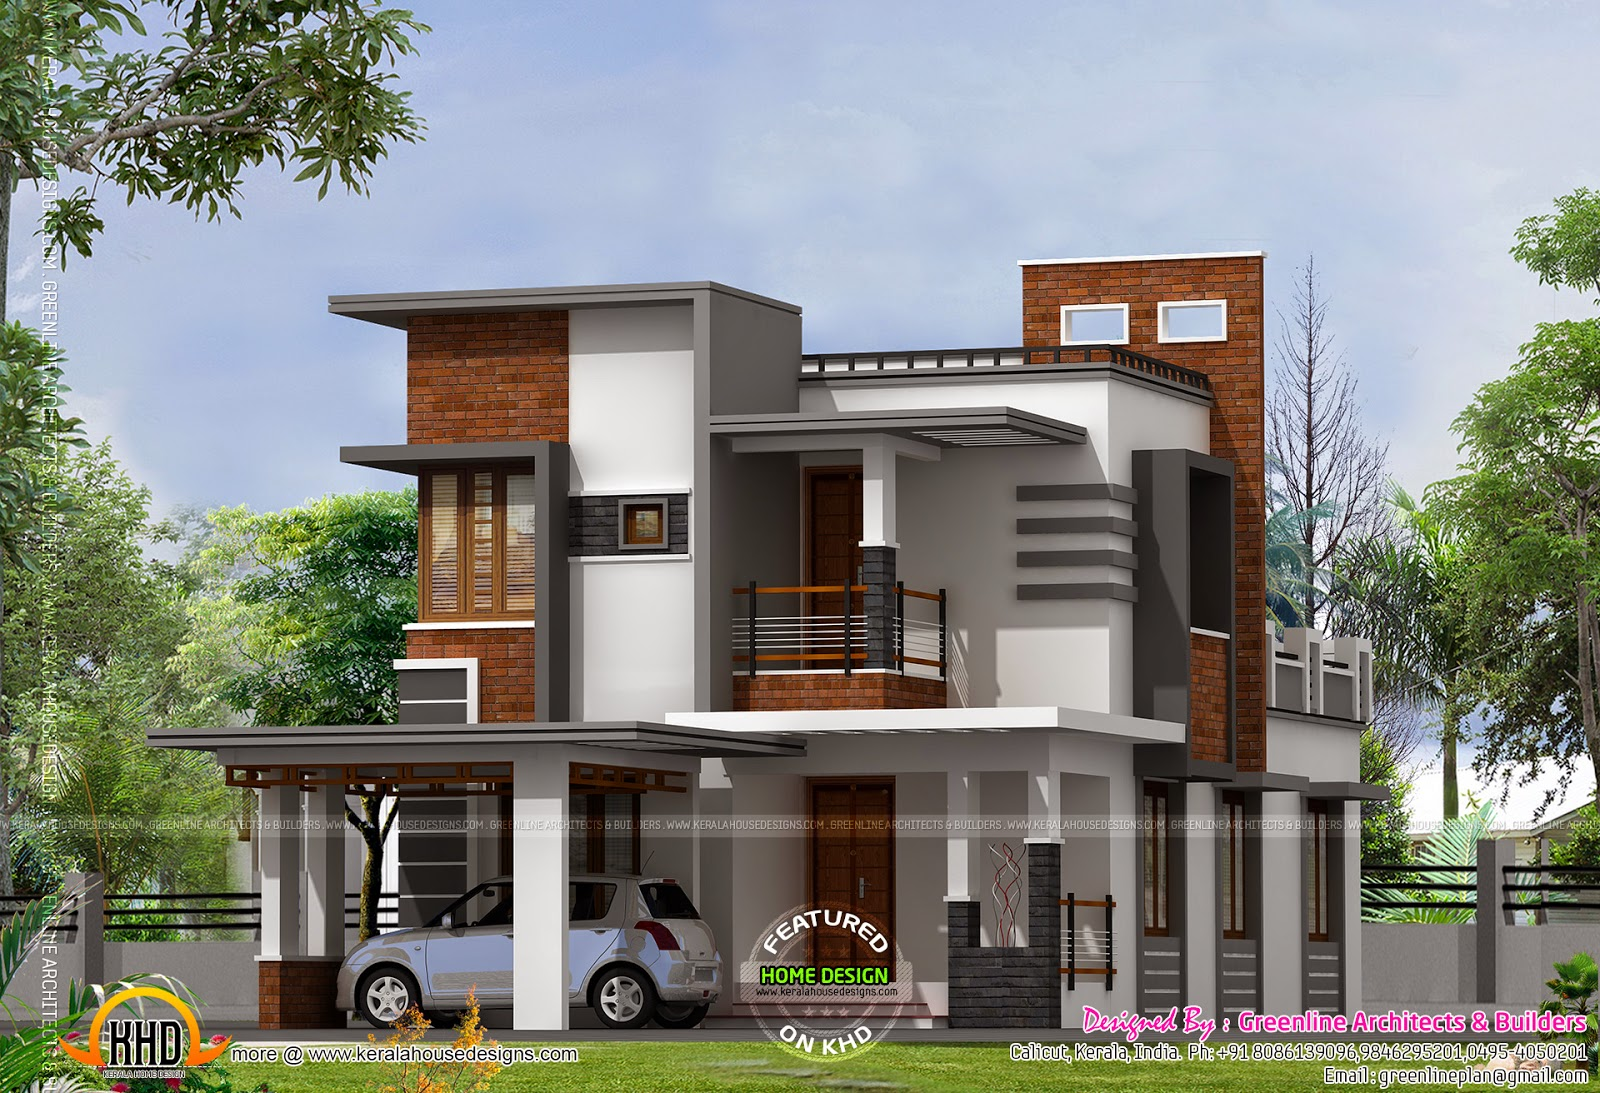 Low cost contemporary house kerala home design and floor for Low cost home design